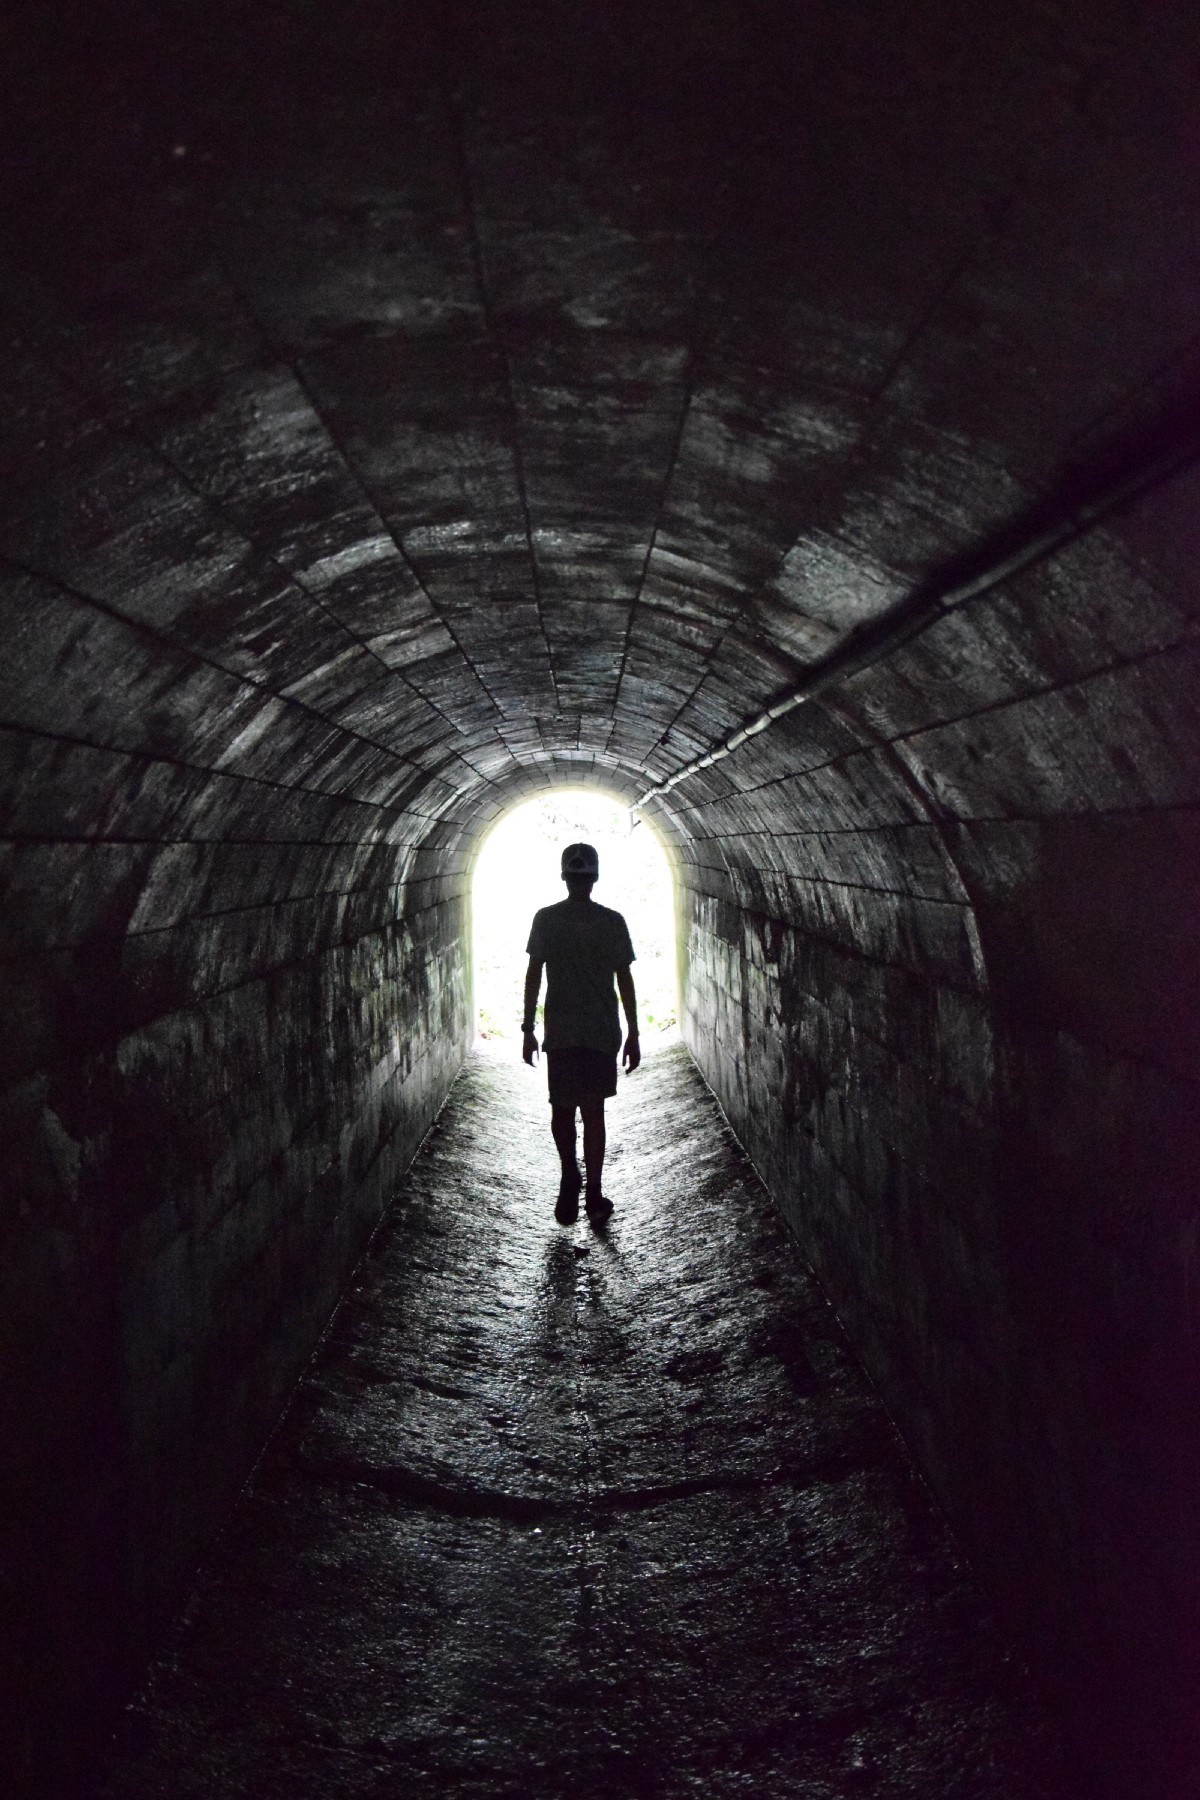 4 Ways To Consciously Emerge from Lockdown And Avoid Negative Old Patterns